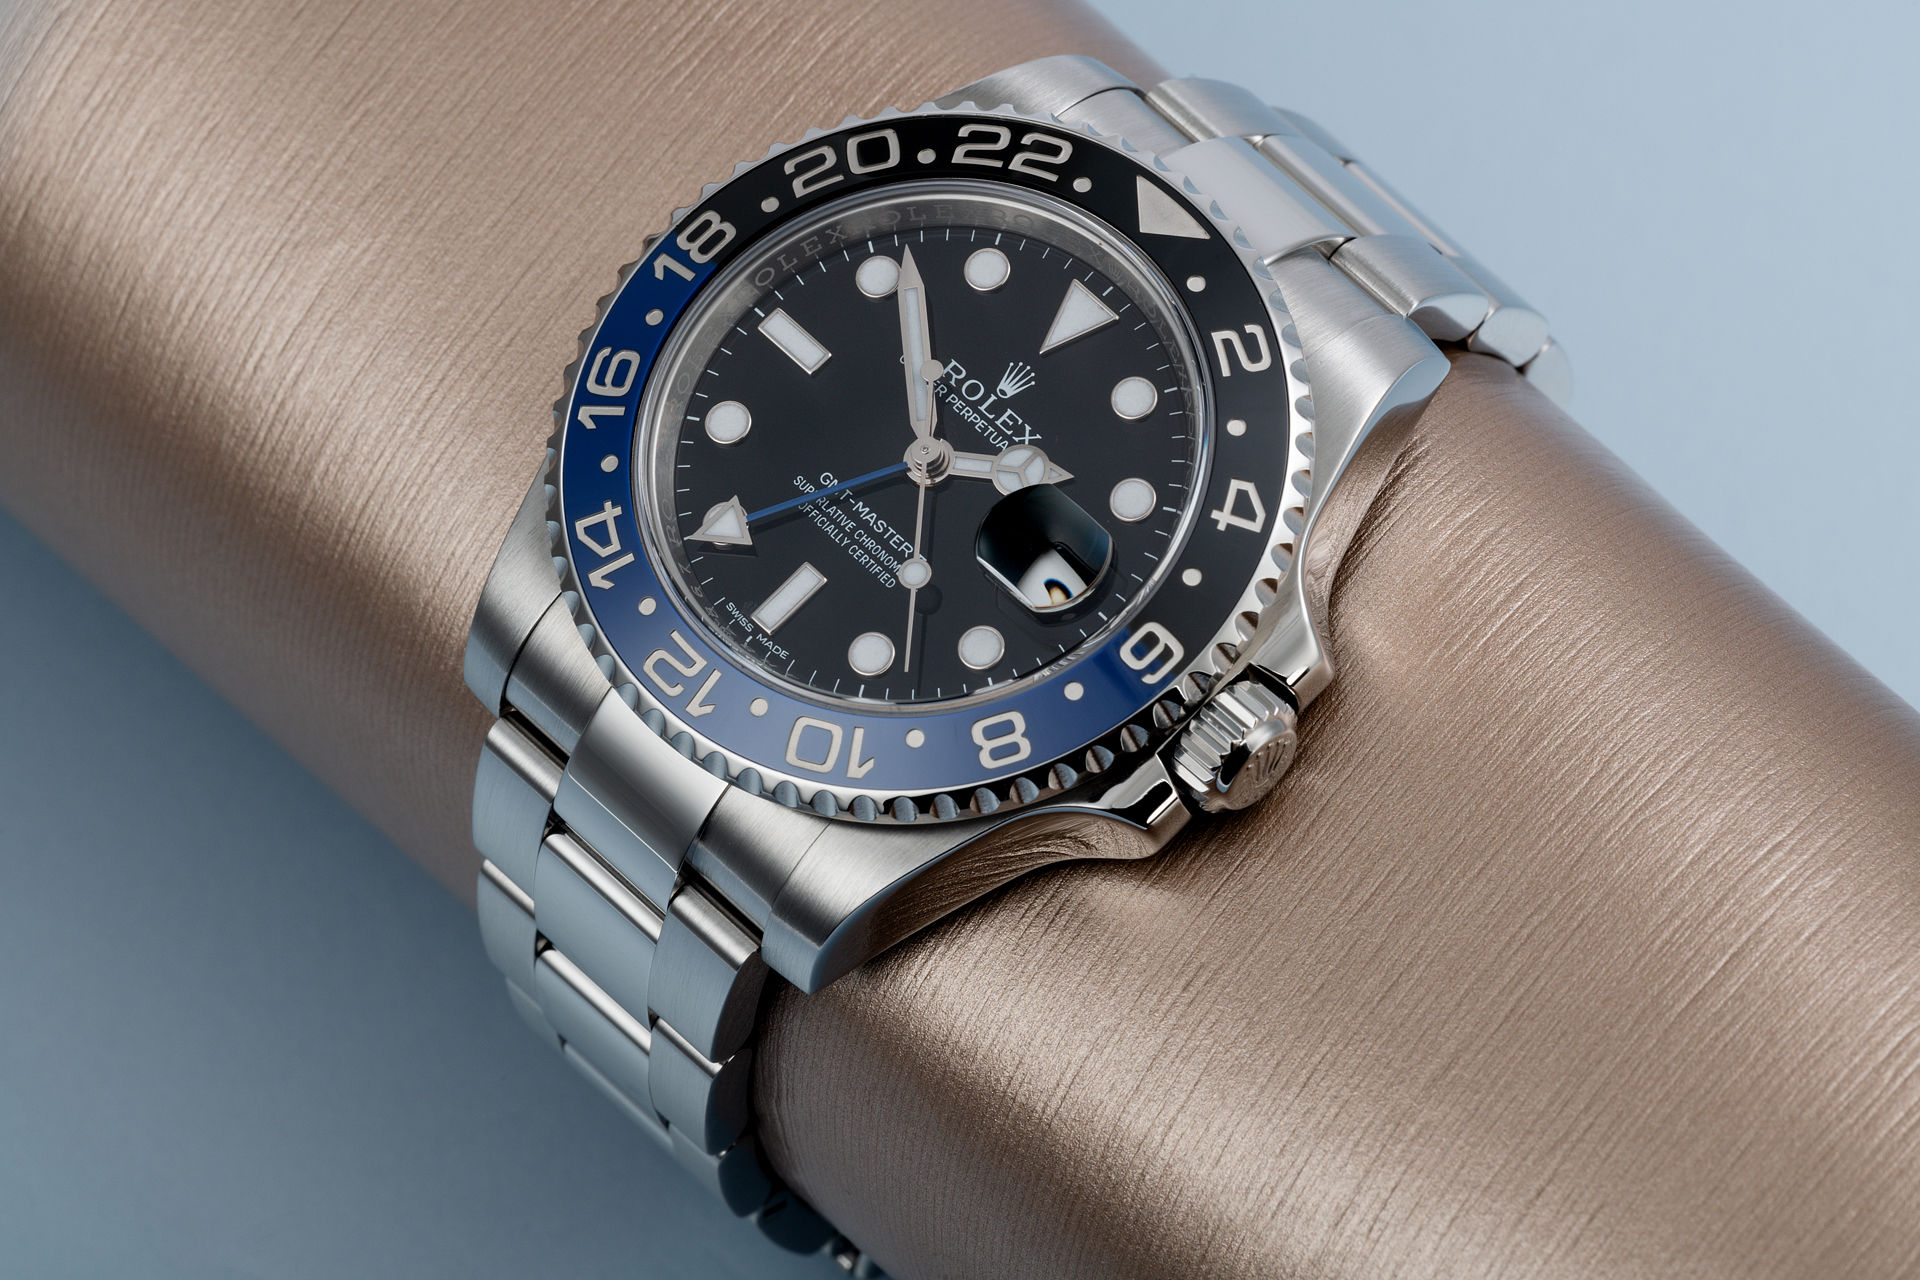 ref 116710BLNR | Box and Certificate  | Rolex GMT-Master II